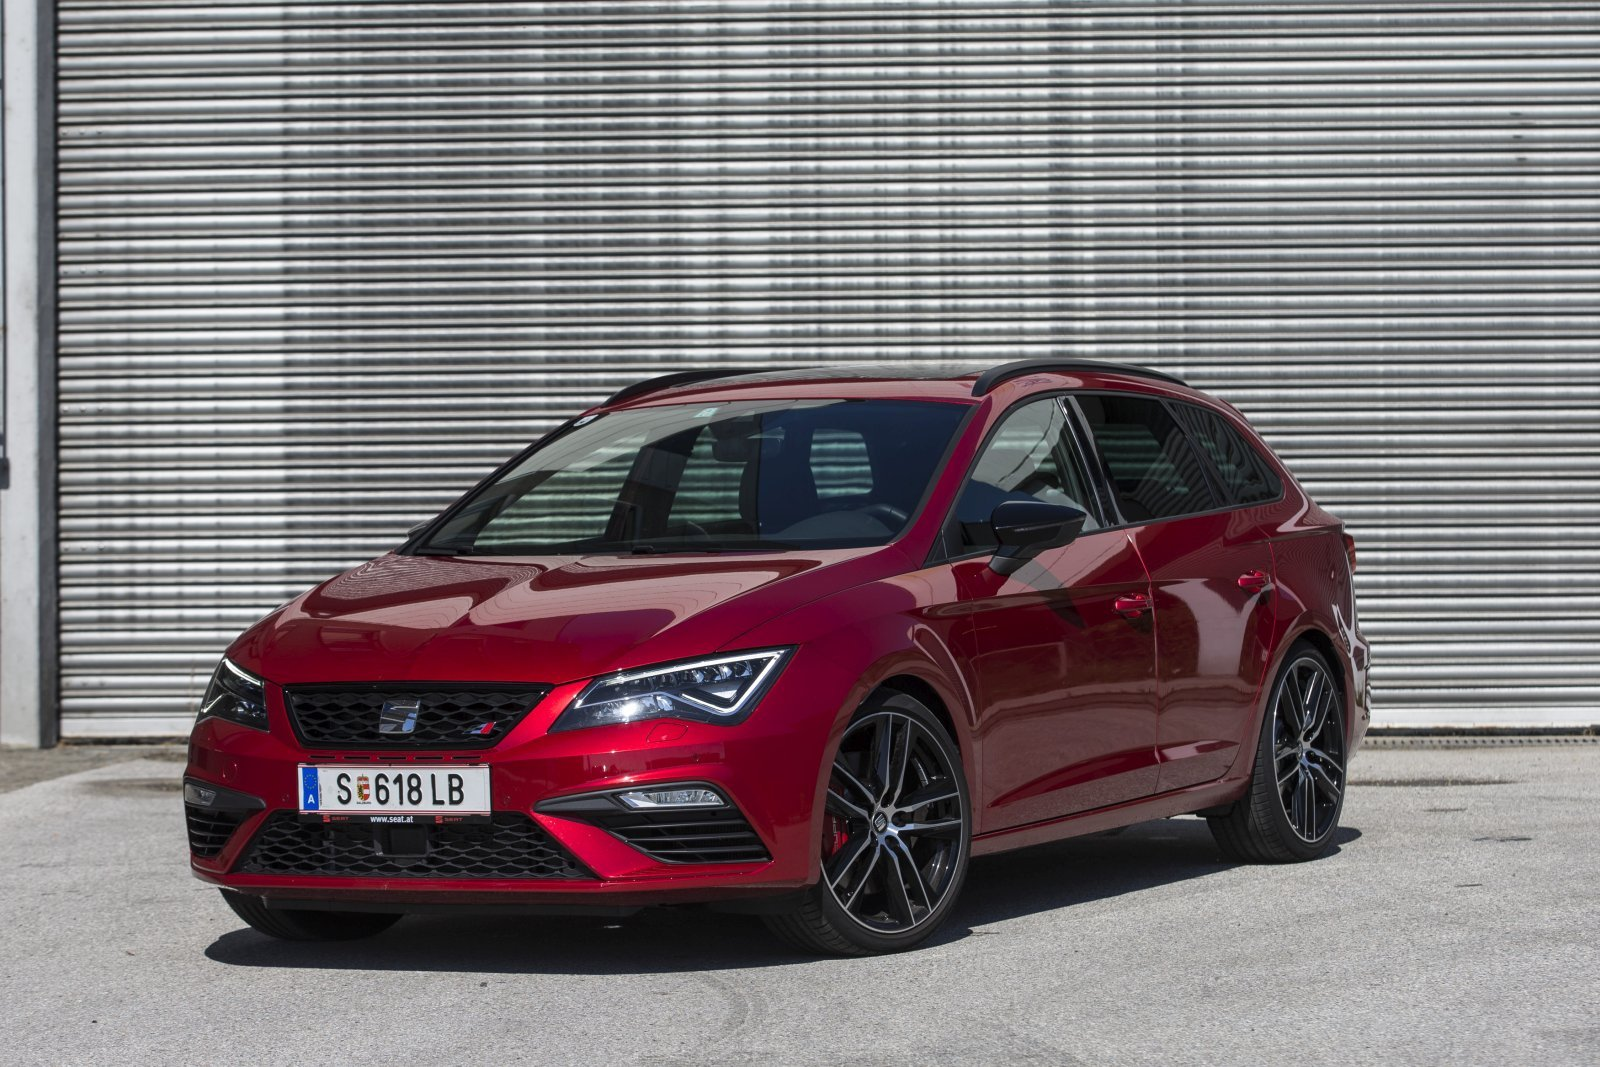 test seat leon st cupra 300 tsi dgs 4drive alles auto. Black Bedroom Furniture Sets. Home Design Ideas